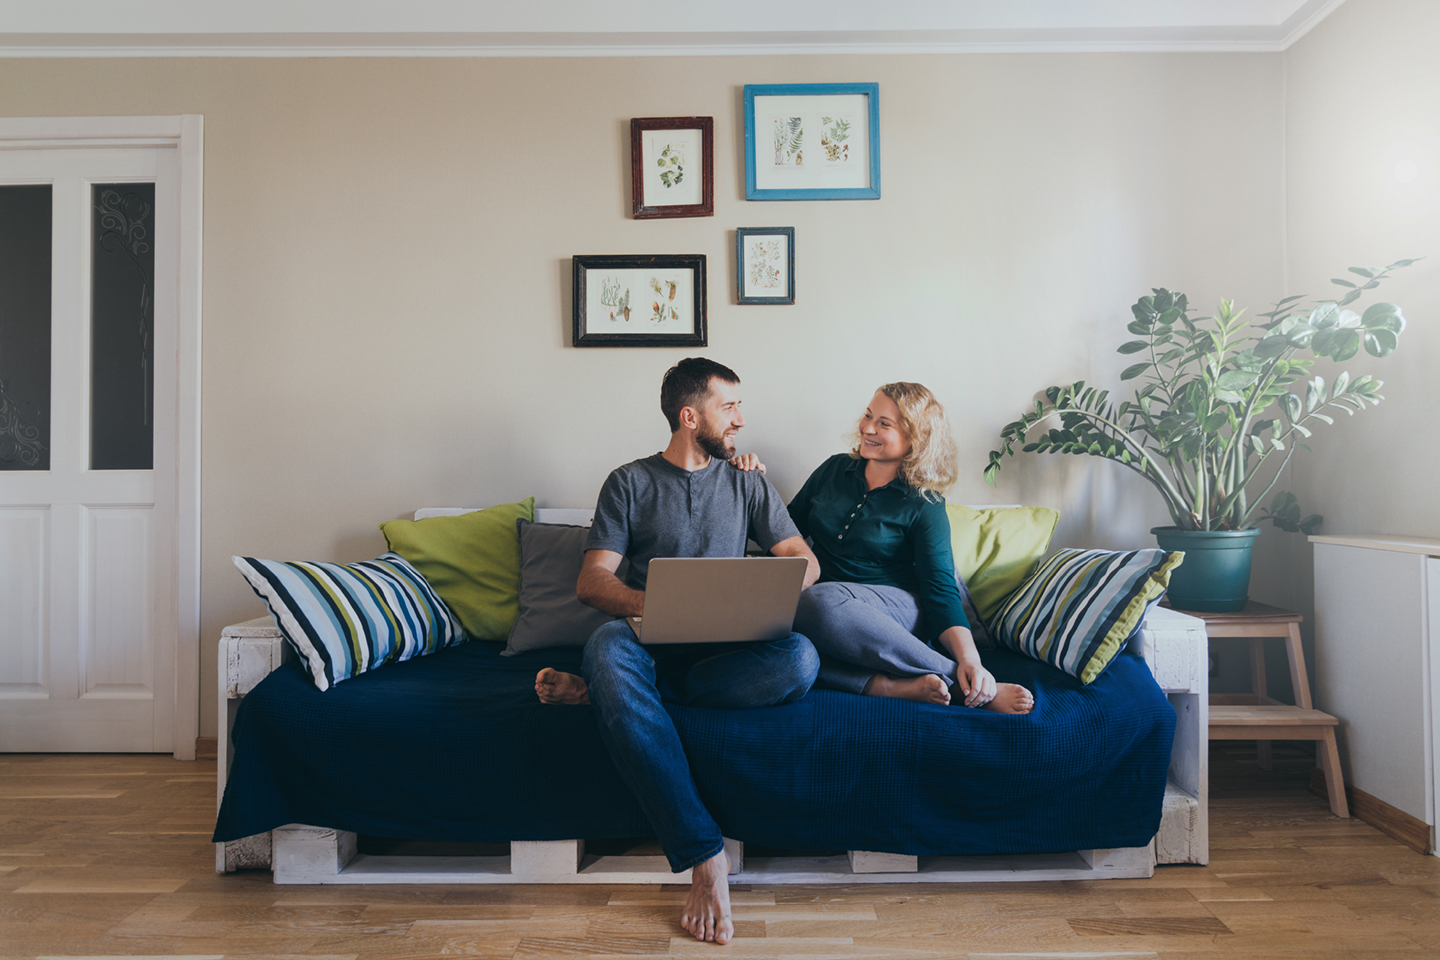 Home upgrades, tuition, or debt consolidation? Home equity makes it possible.